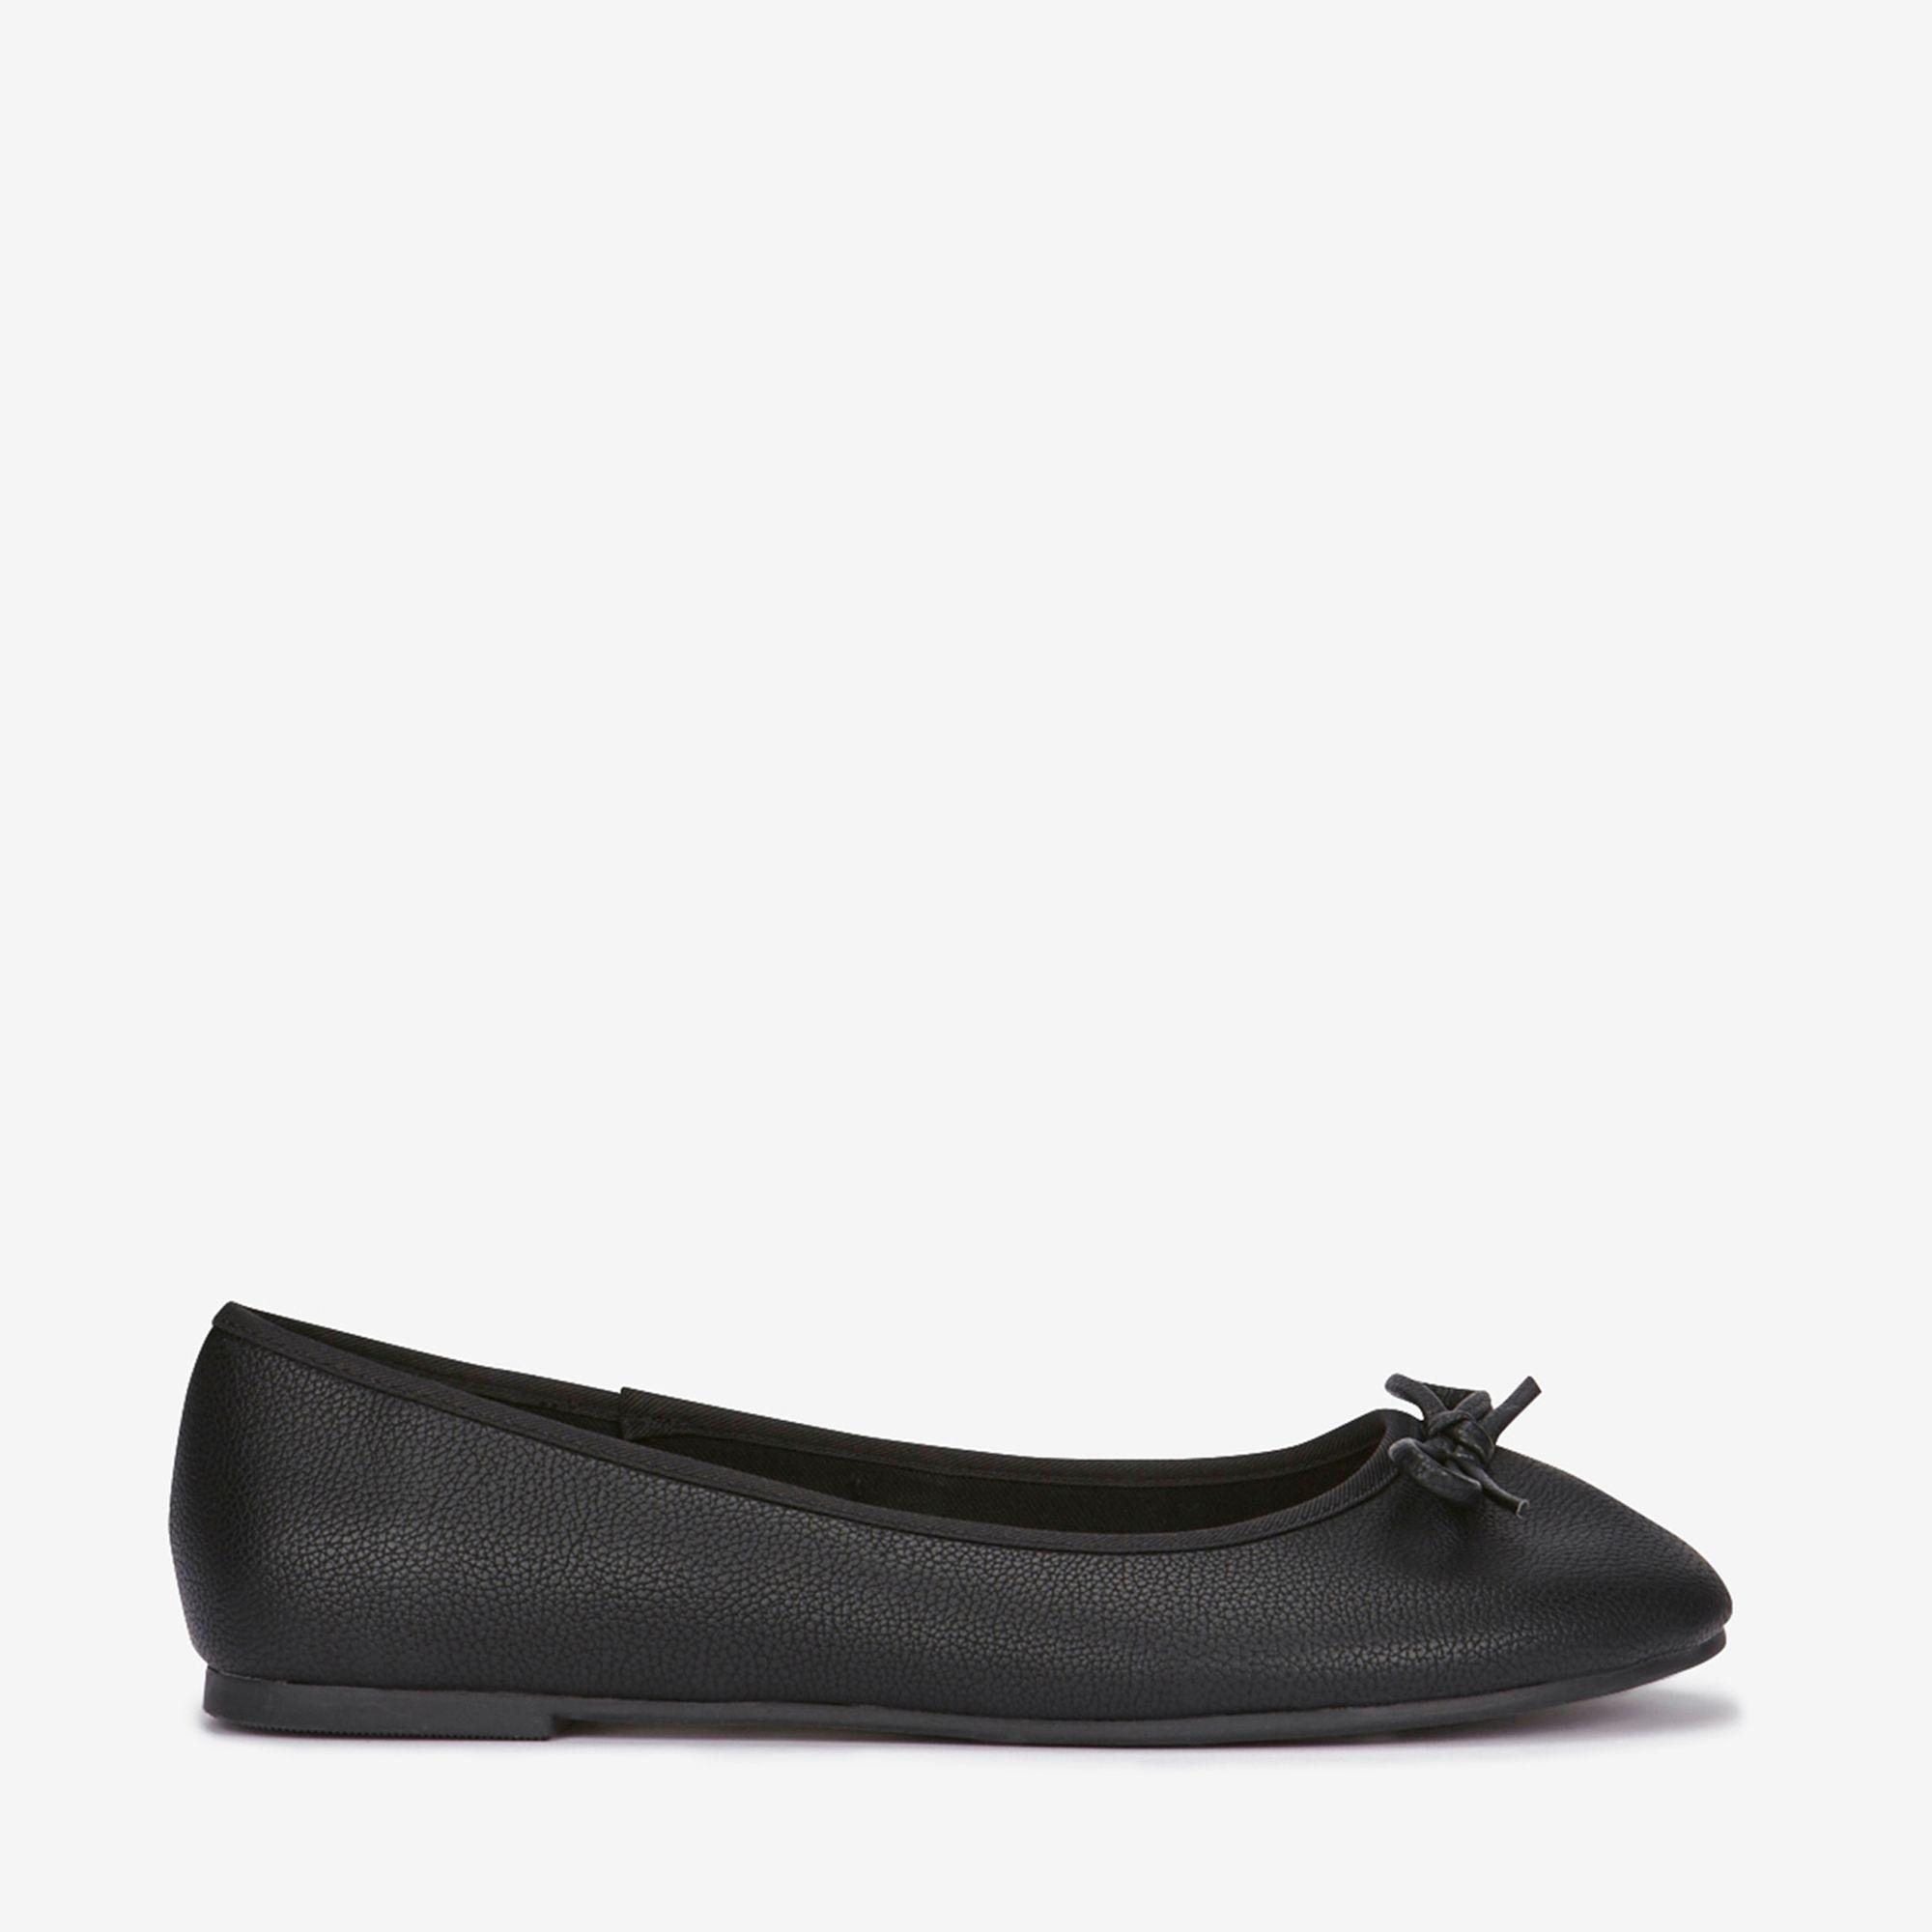 d1721947110f Evans Extra Wide Fit Black Bow Ballerina in Black - Lyst